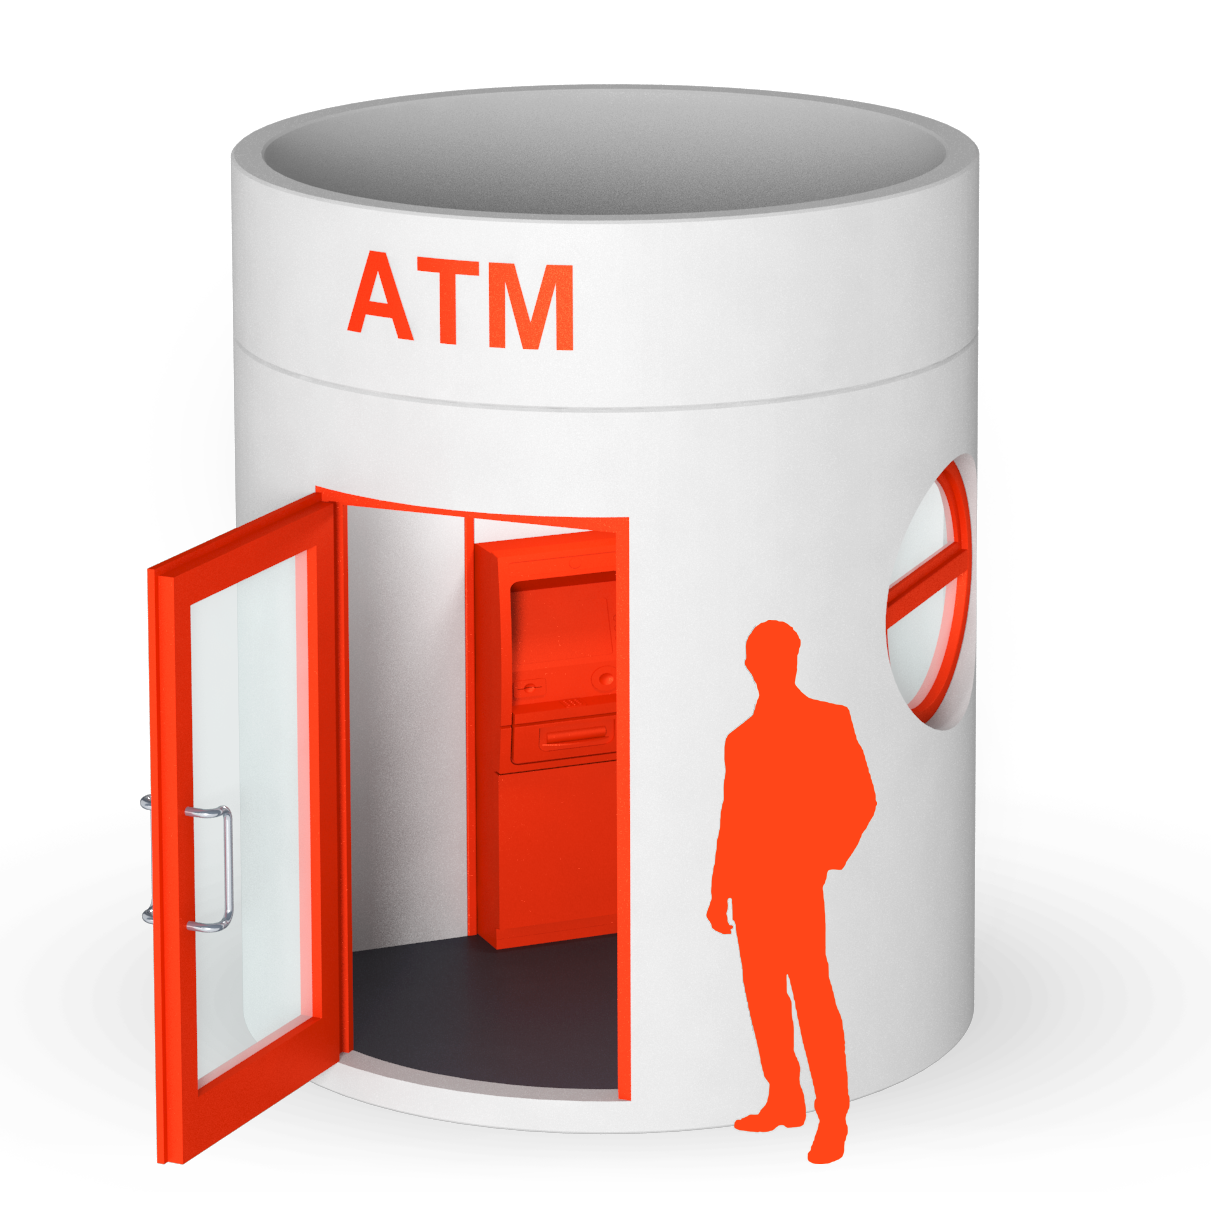 bboxx ATM 1 or 2 ATMs with anteroom